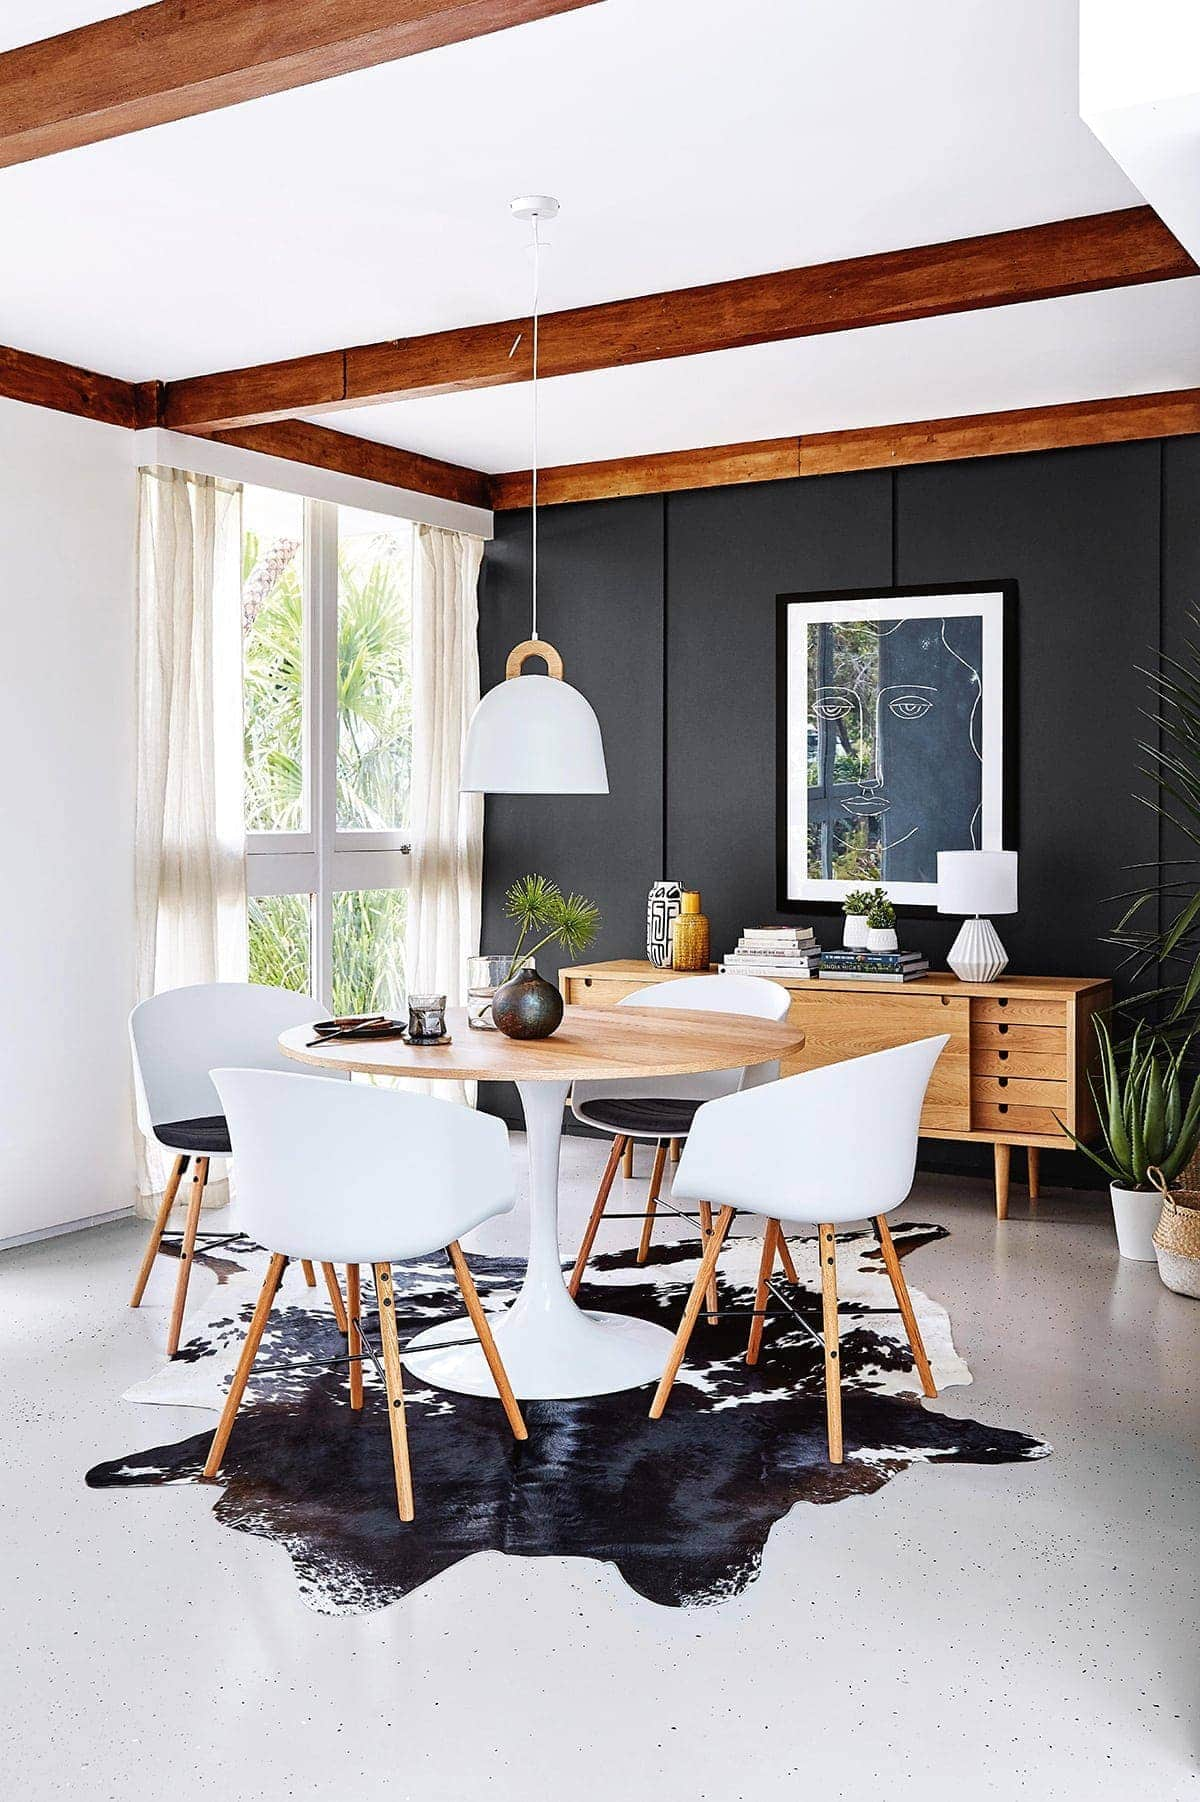 Rugs Under Dining Tables 4 Key Tips To Getting Them Right Tlc Interiors